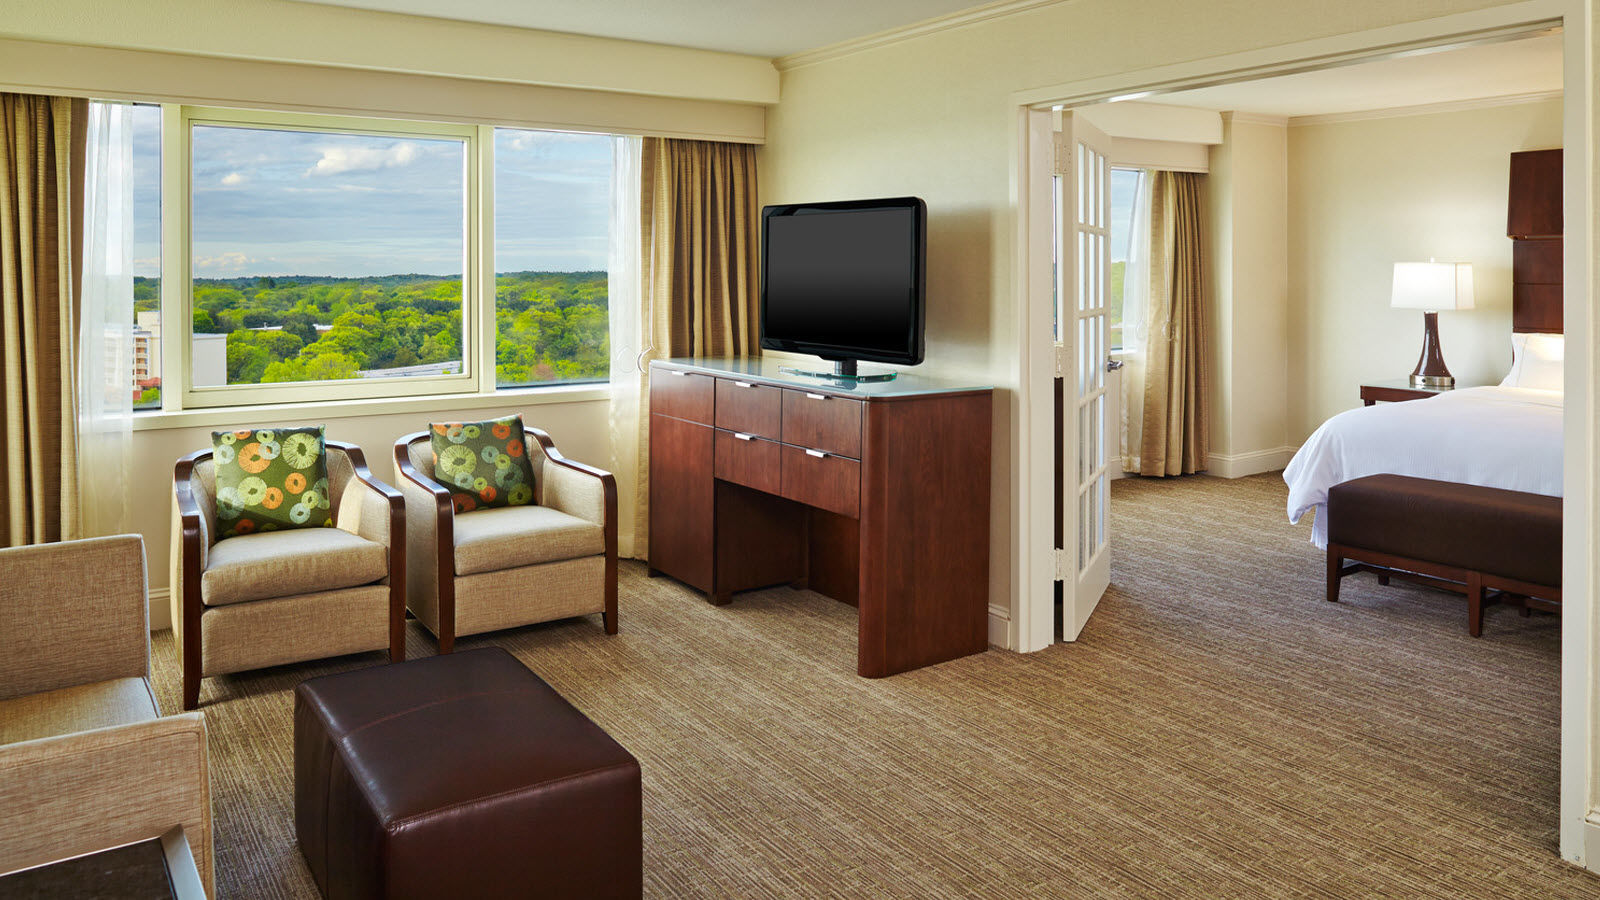 The Westin Waltham Boston prospect suite